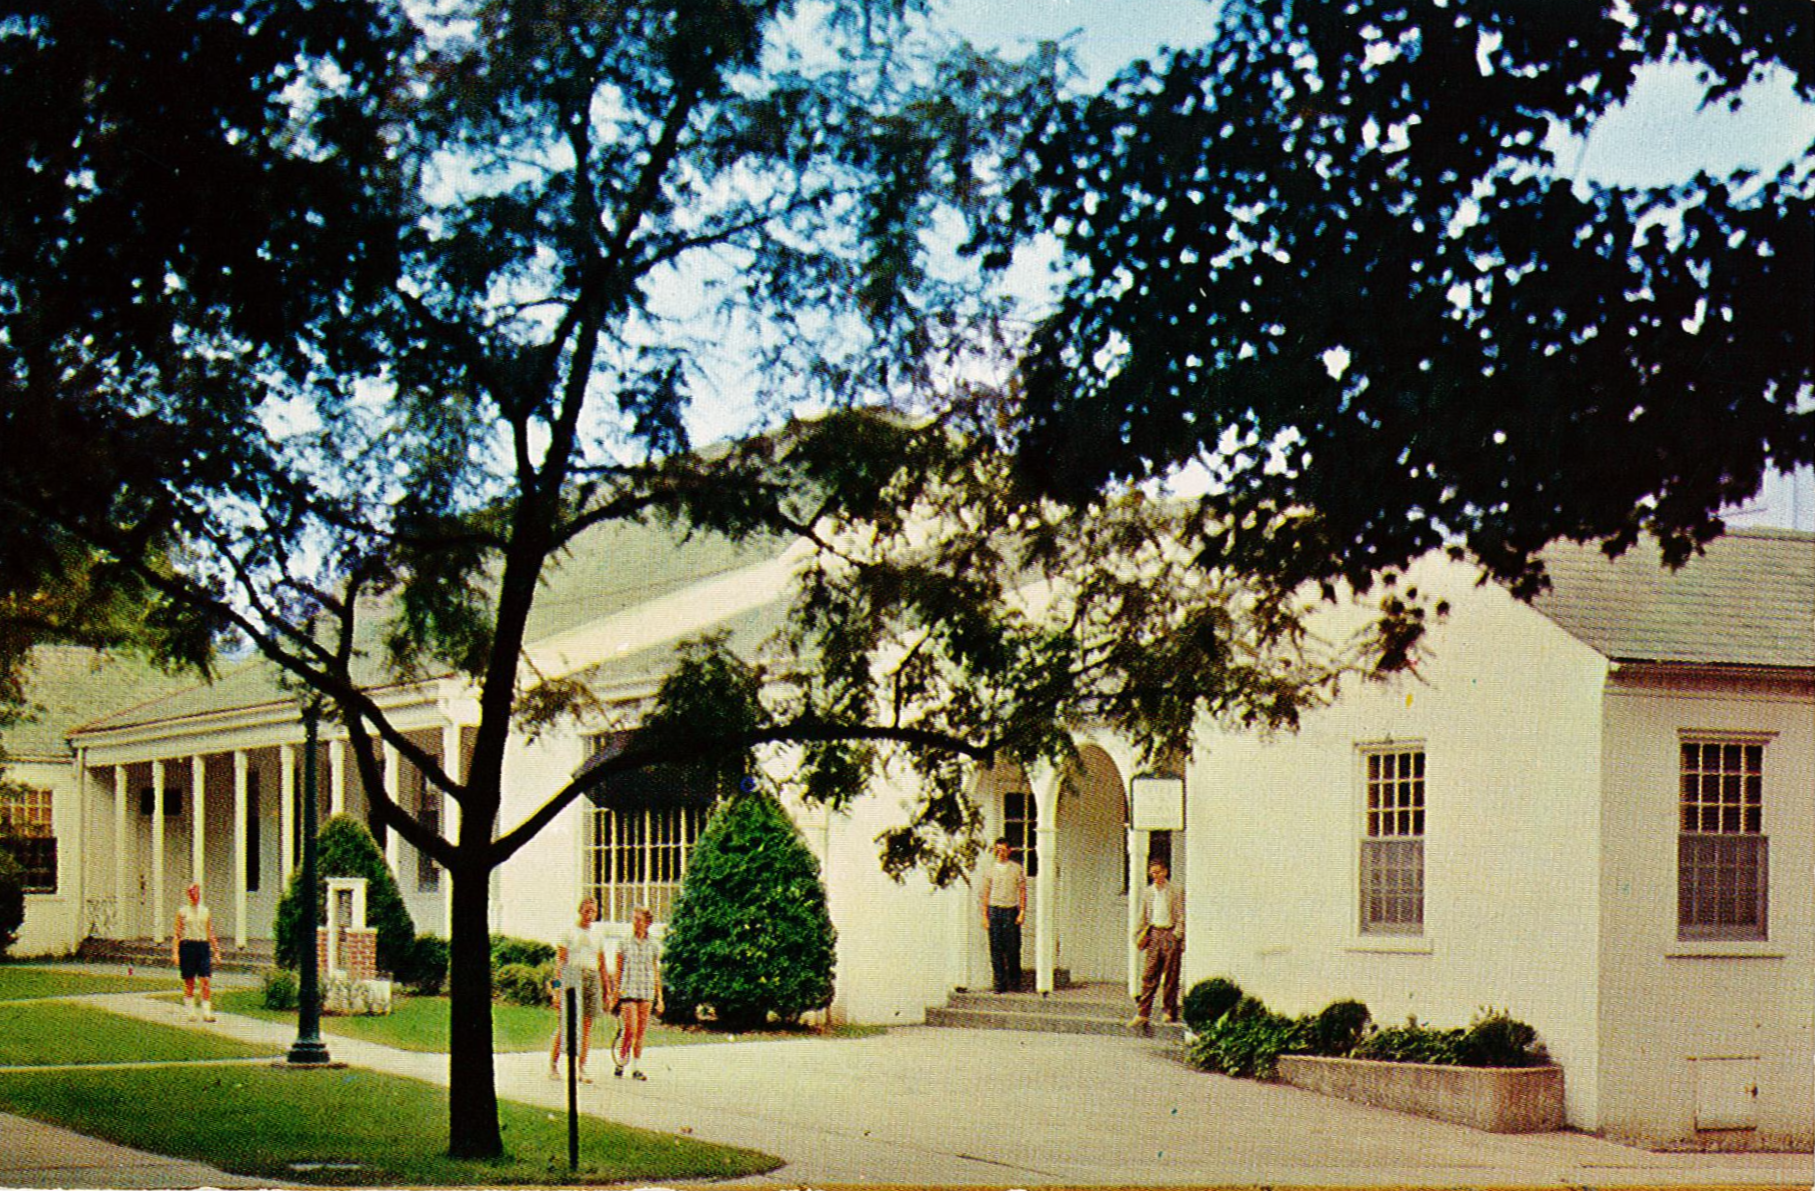 The Shawkey Student Union, located just northwest of the site of the MSC, was the center of student life from 1933 to 1971.